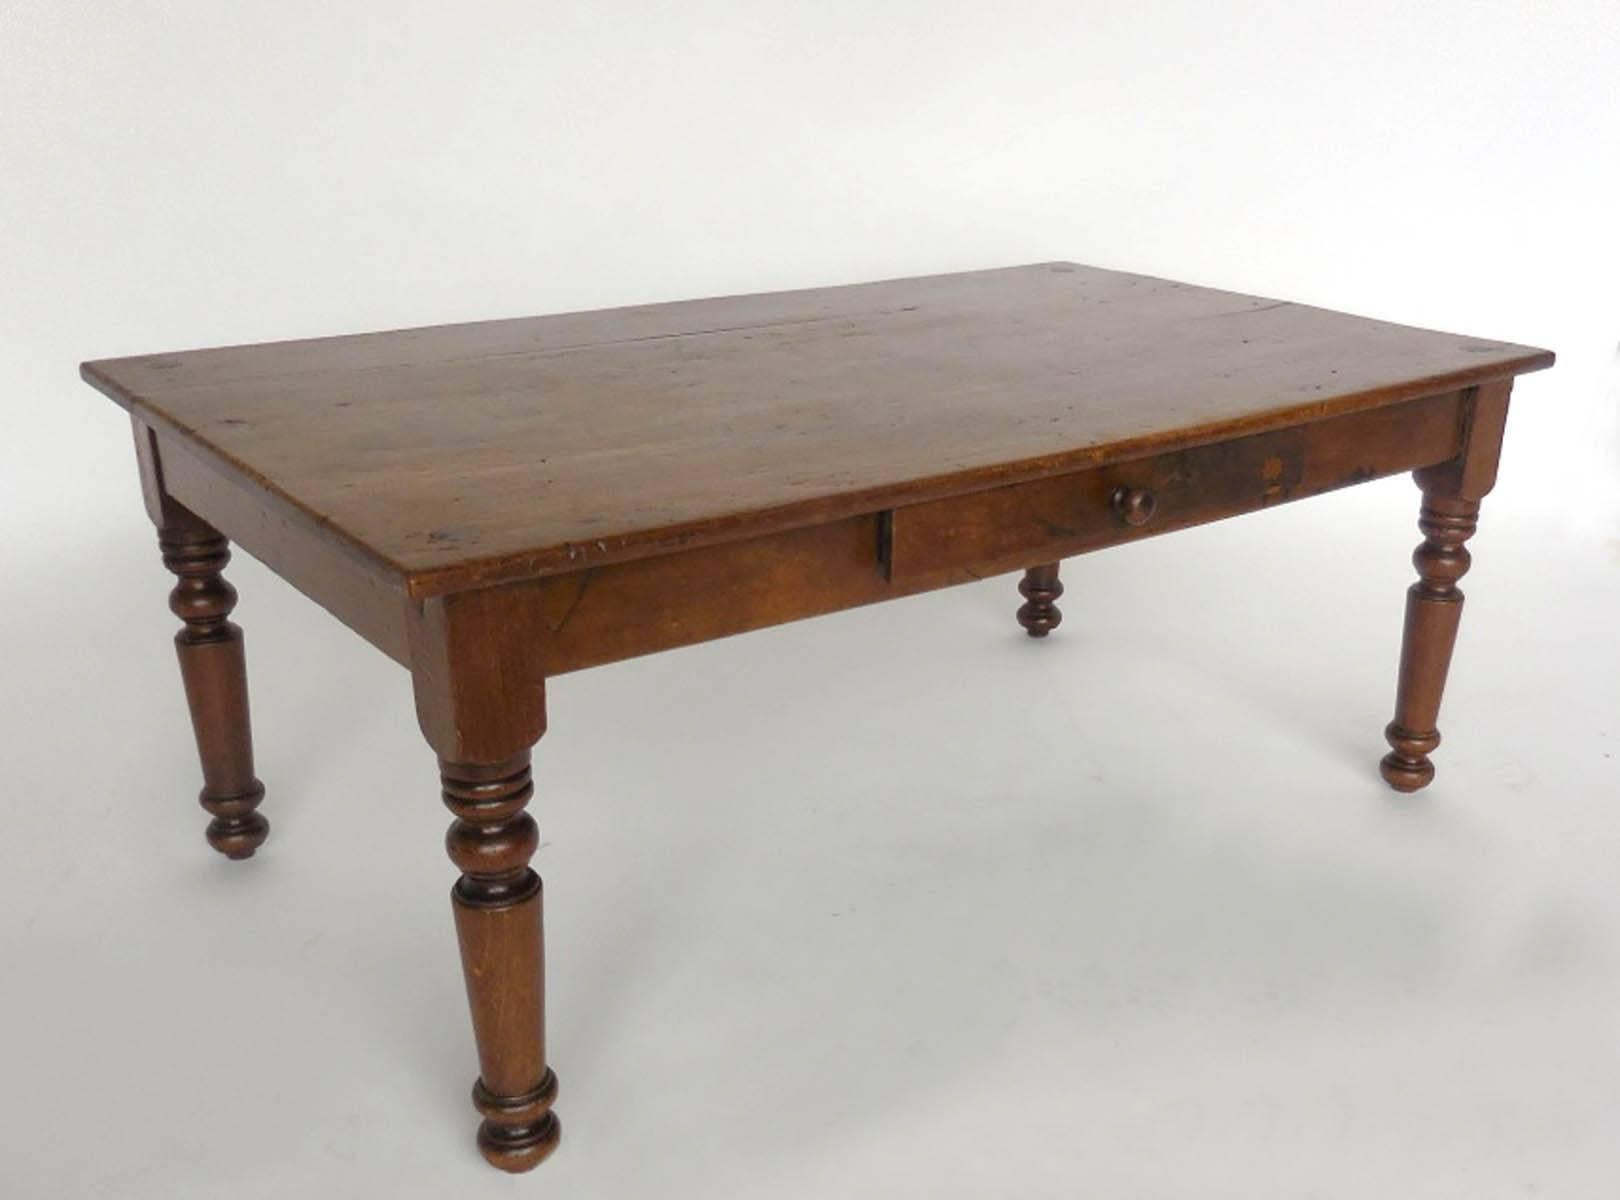 Delicieux Early 20th Century Childu0027s Bed Turned Coffee Table. Beautiful, Simple Turned  Legs, Nice